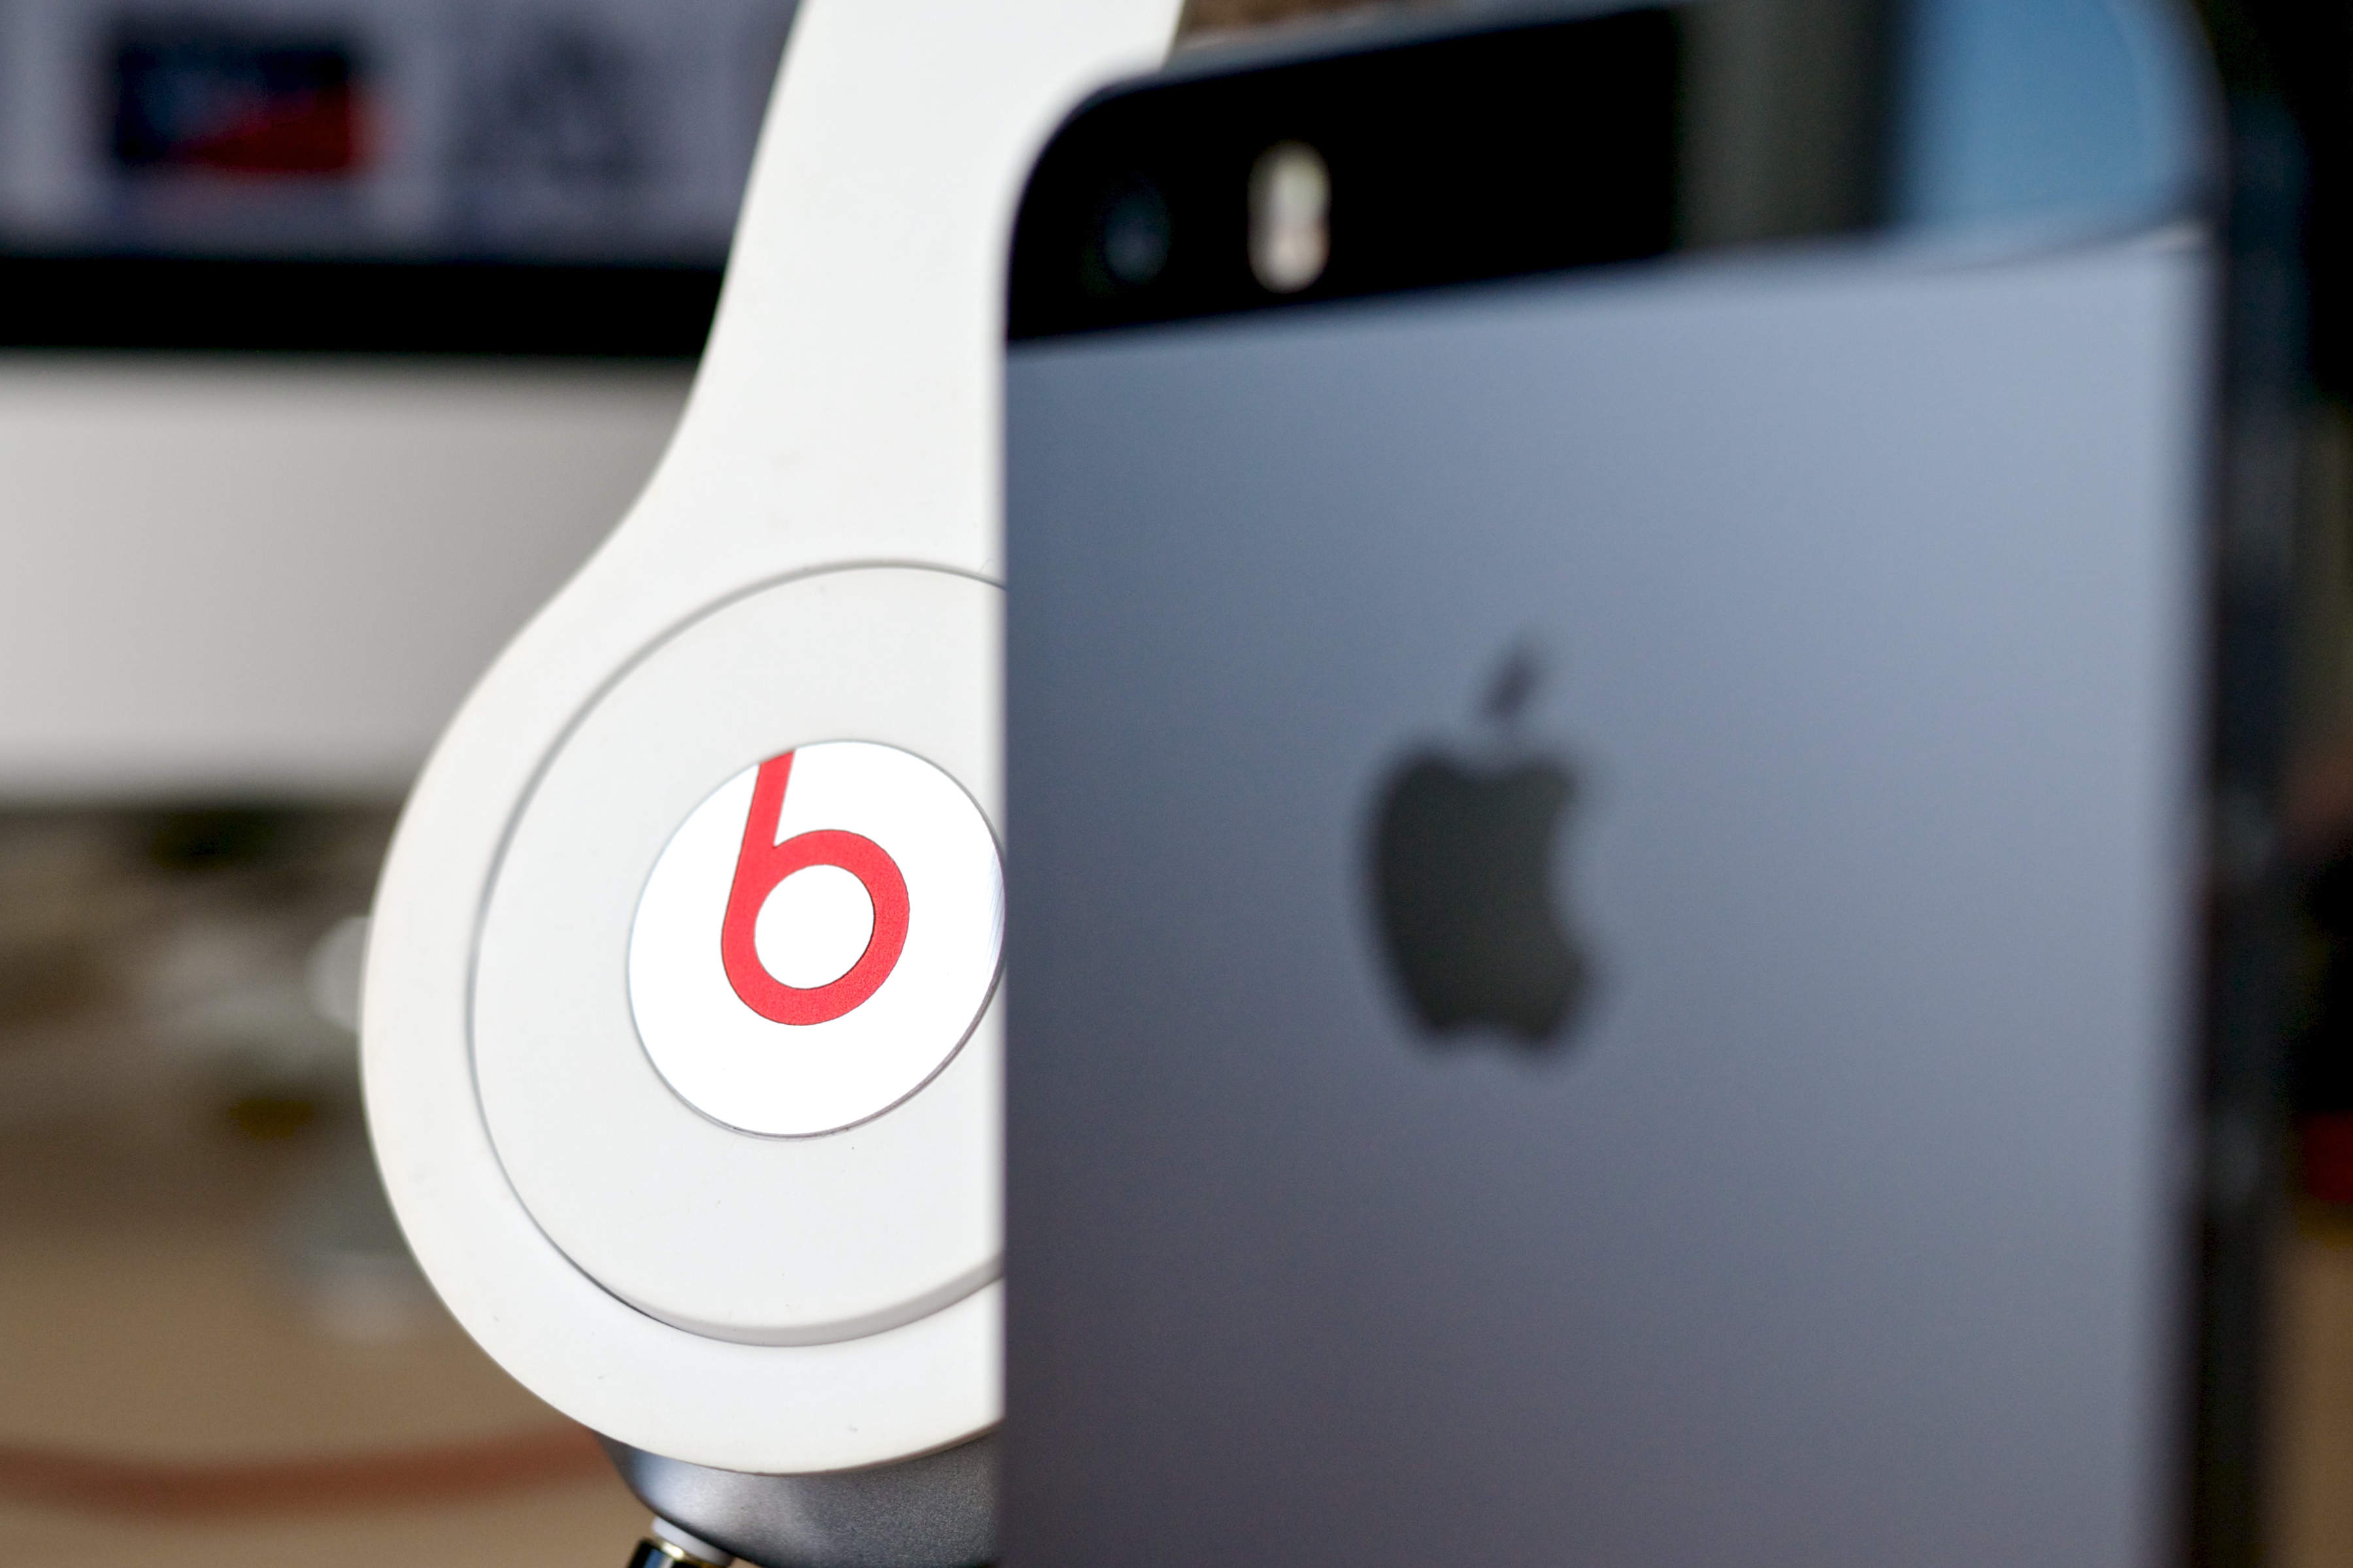 Possible new version of Beats Music at WWDC 2015